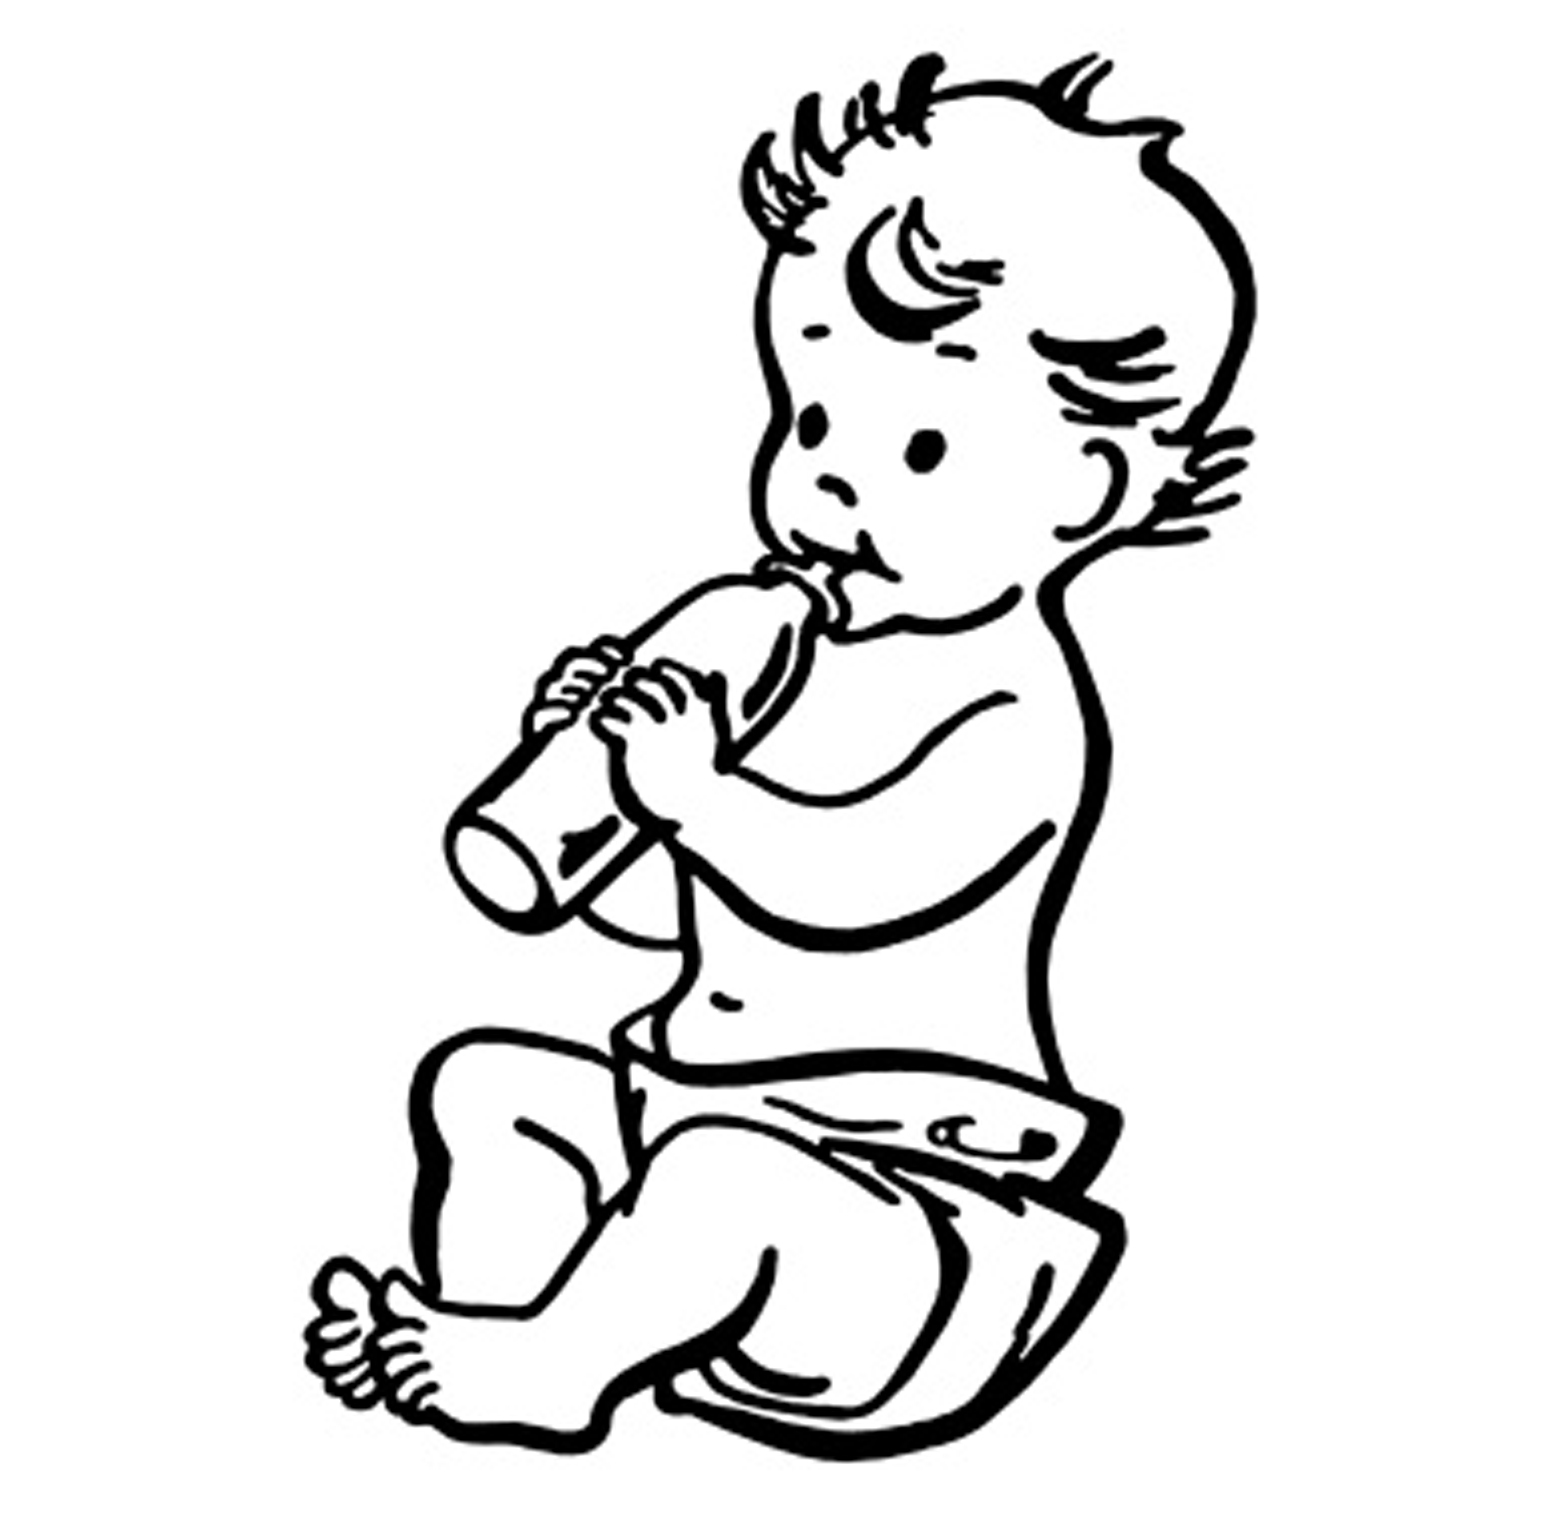 Black baby playing with white baby clipart graphic black and white library Black And White Baby Clipart | Free download best Black And ... graphic black and white library